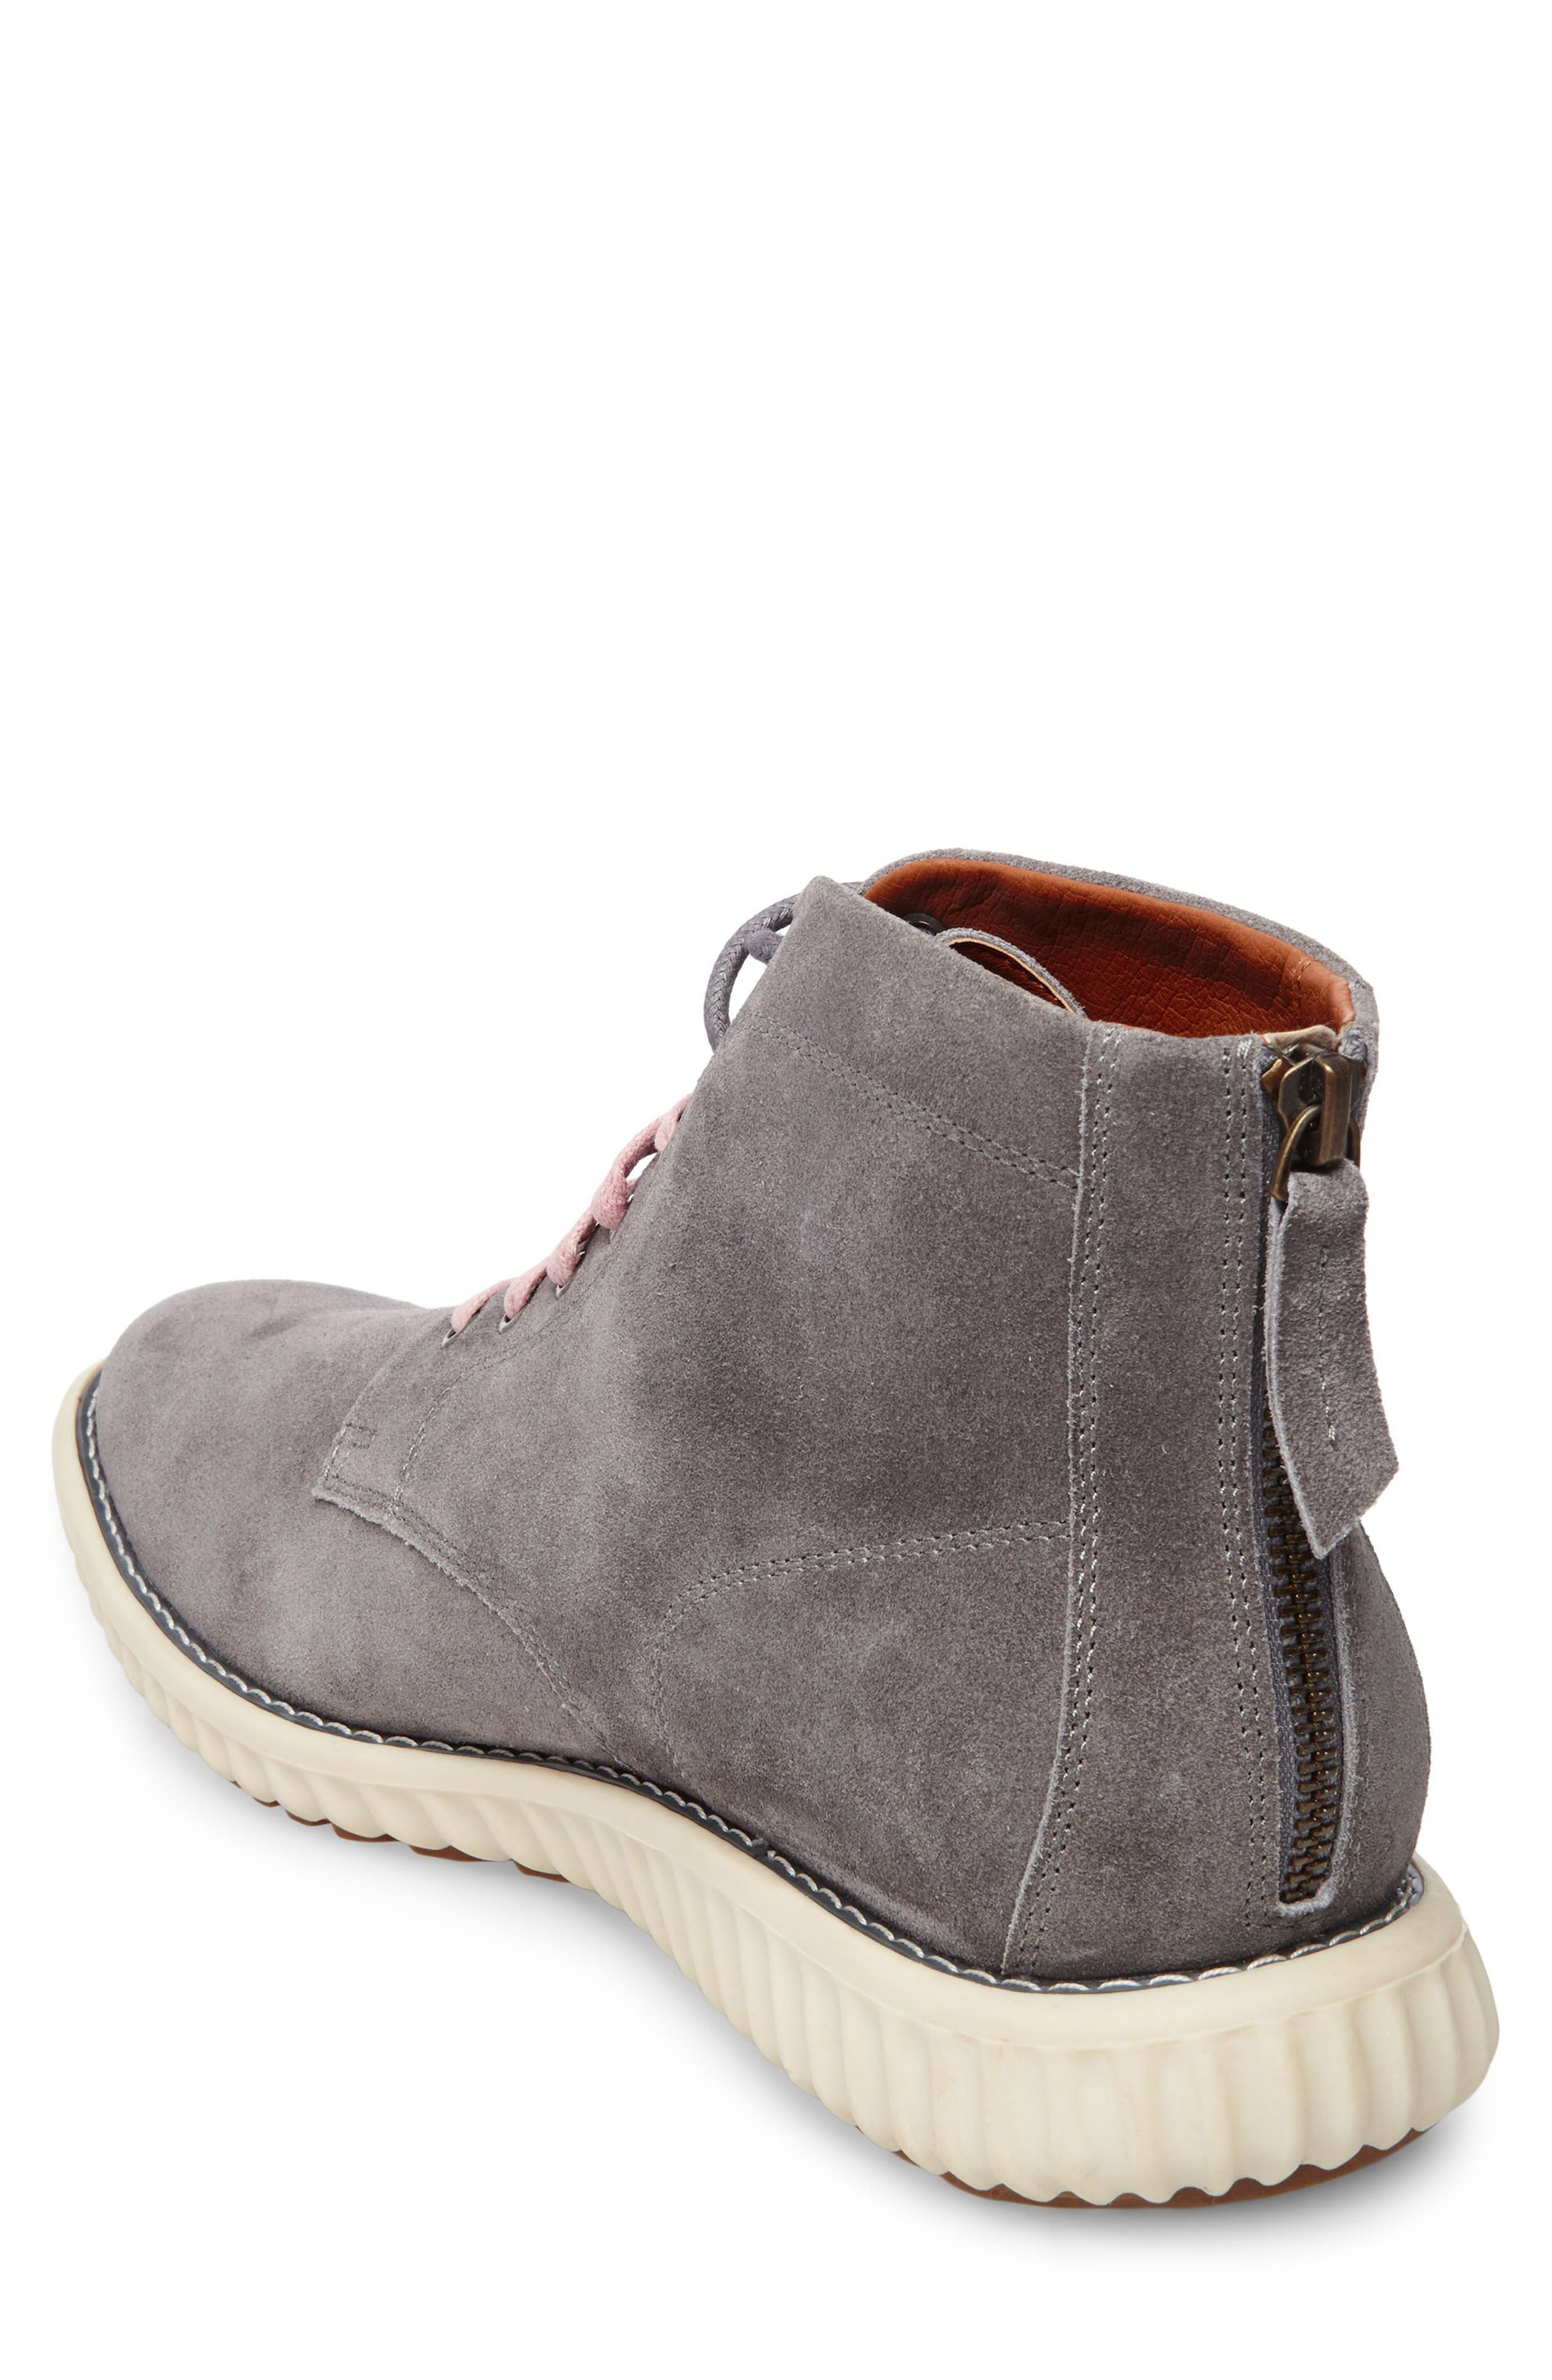 Verner Suede Plain Toe Boot,                             Alternate thumbnail 2, color,                             Dark Grey Suede